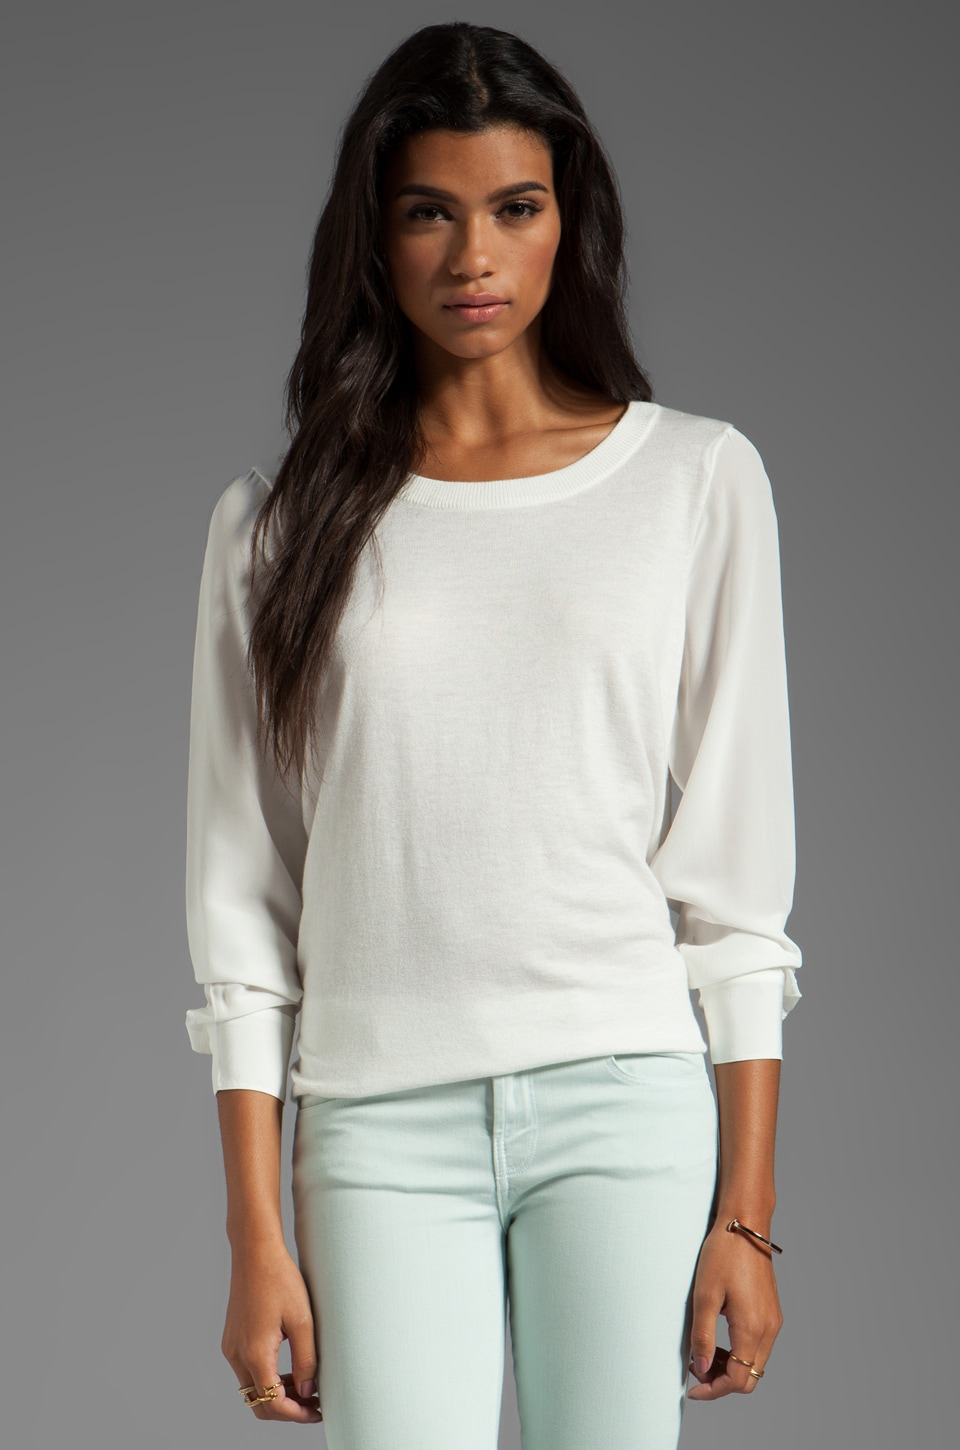 Joie Solid With Silk Kelsea Top in Porcelain